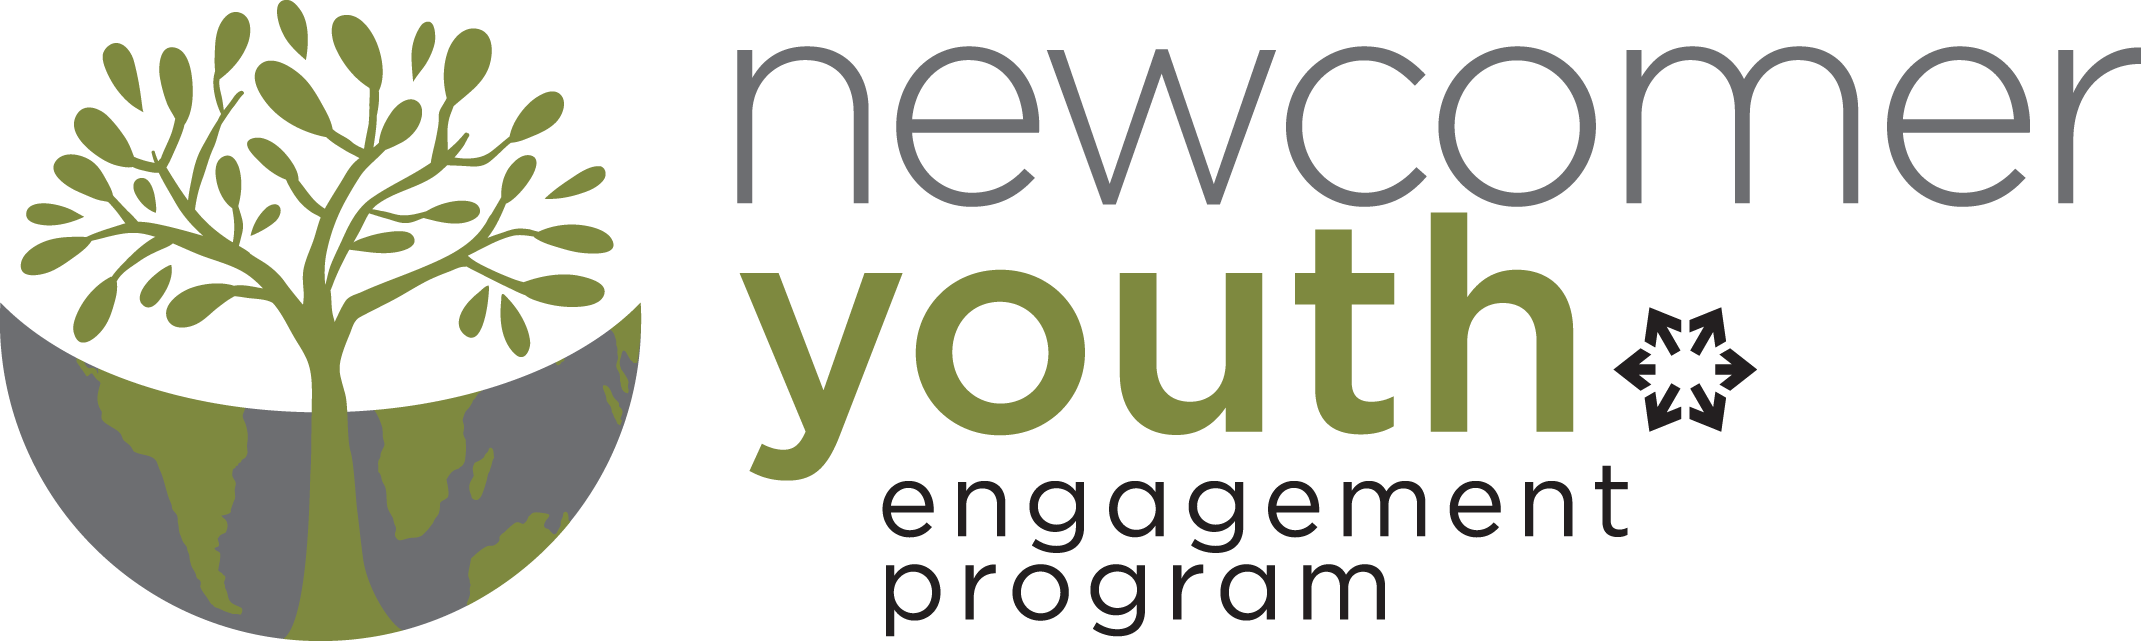 Newcomer Youth Engagement Program